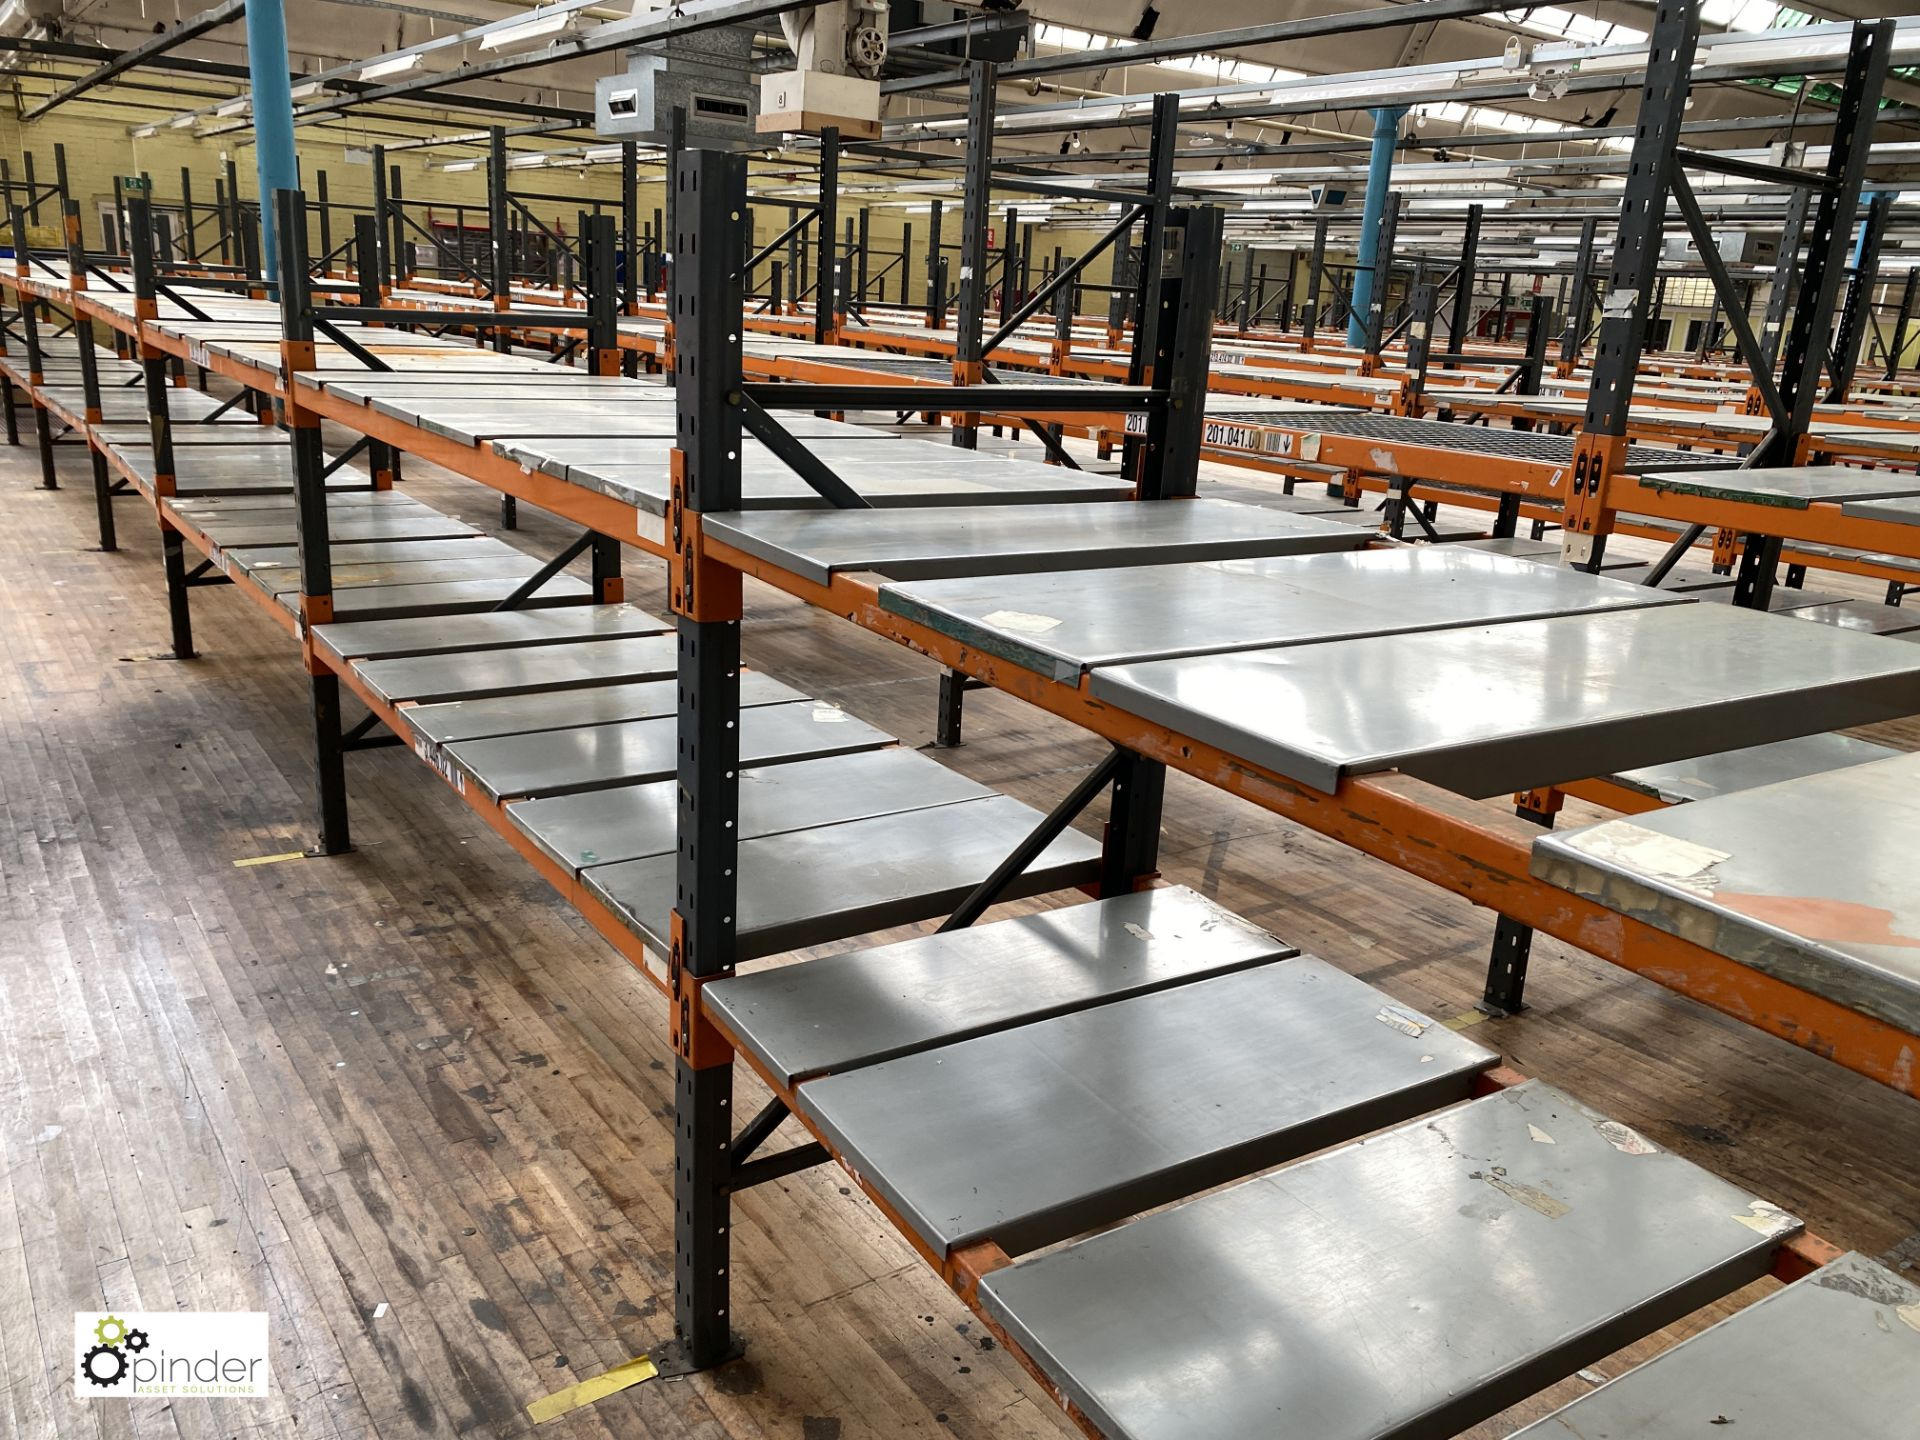 10 bays Dexion Speedlock boltless Racking, comprising 4 uprights 2440mm x 910mm, 7 uprights 1835mm x - Image 2 of 3